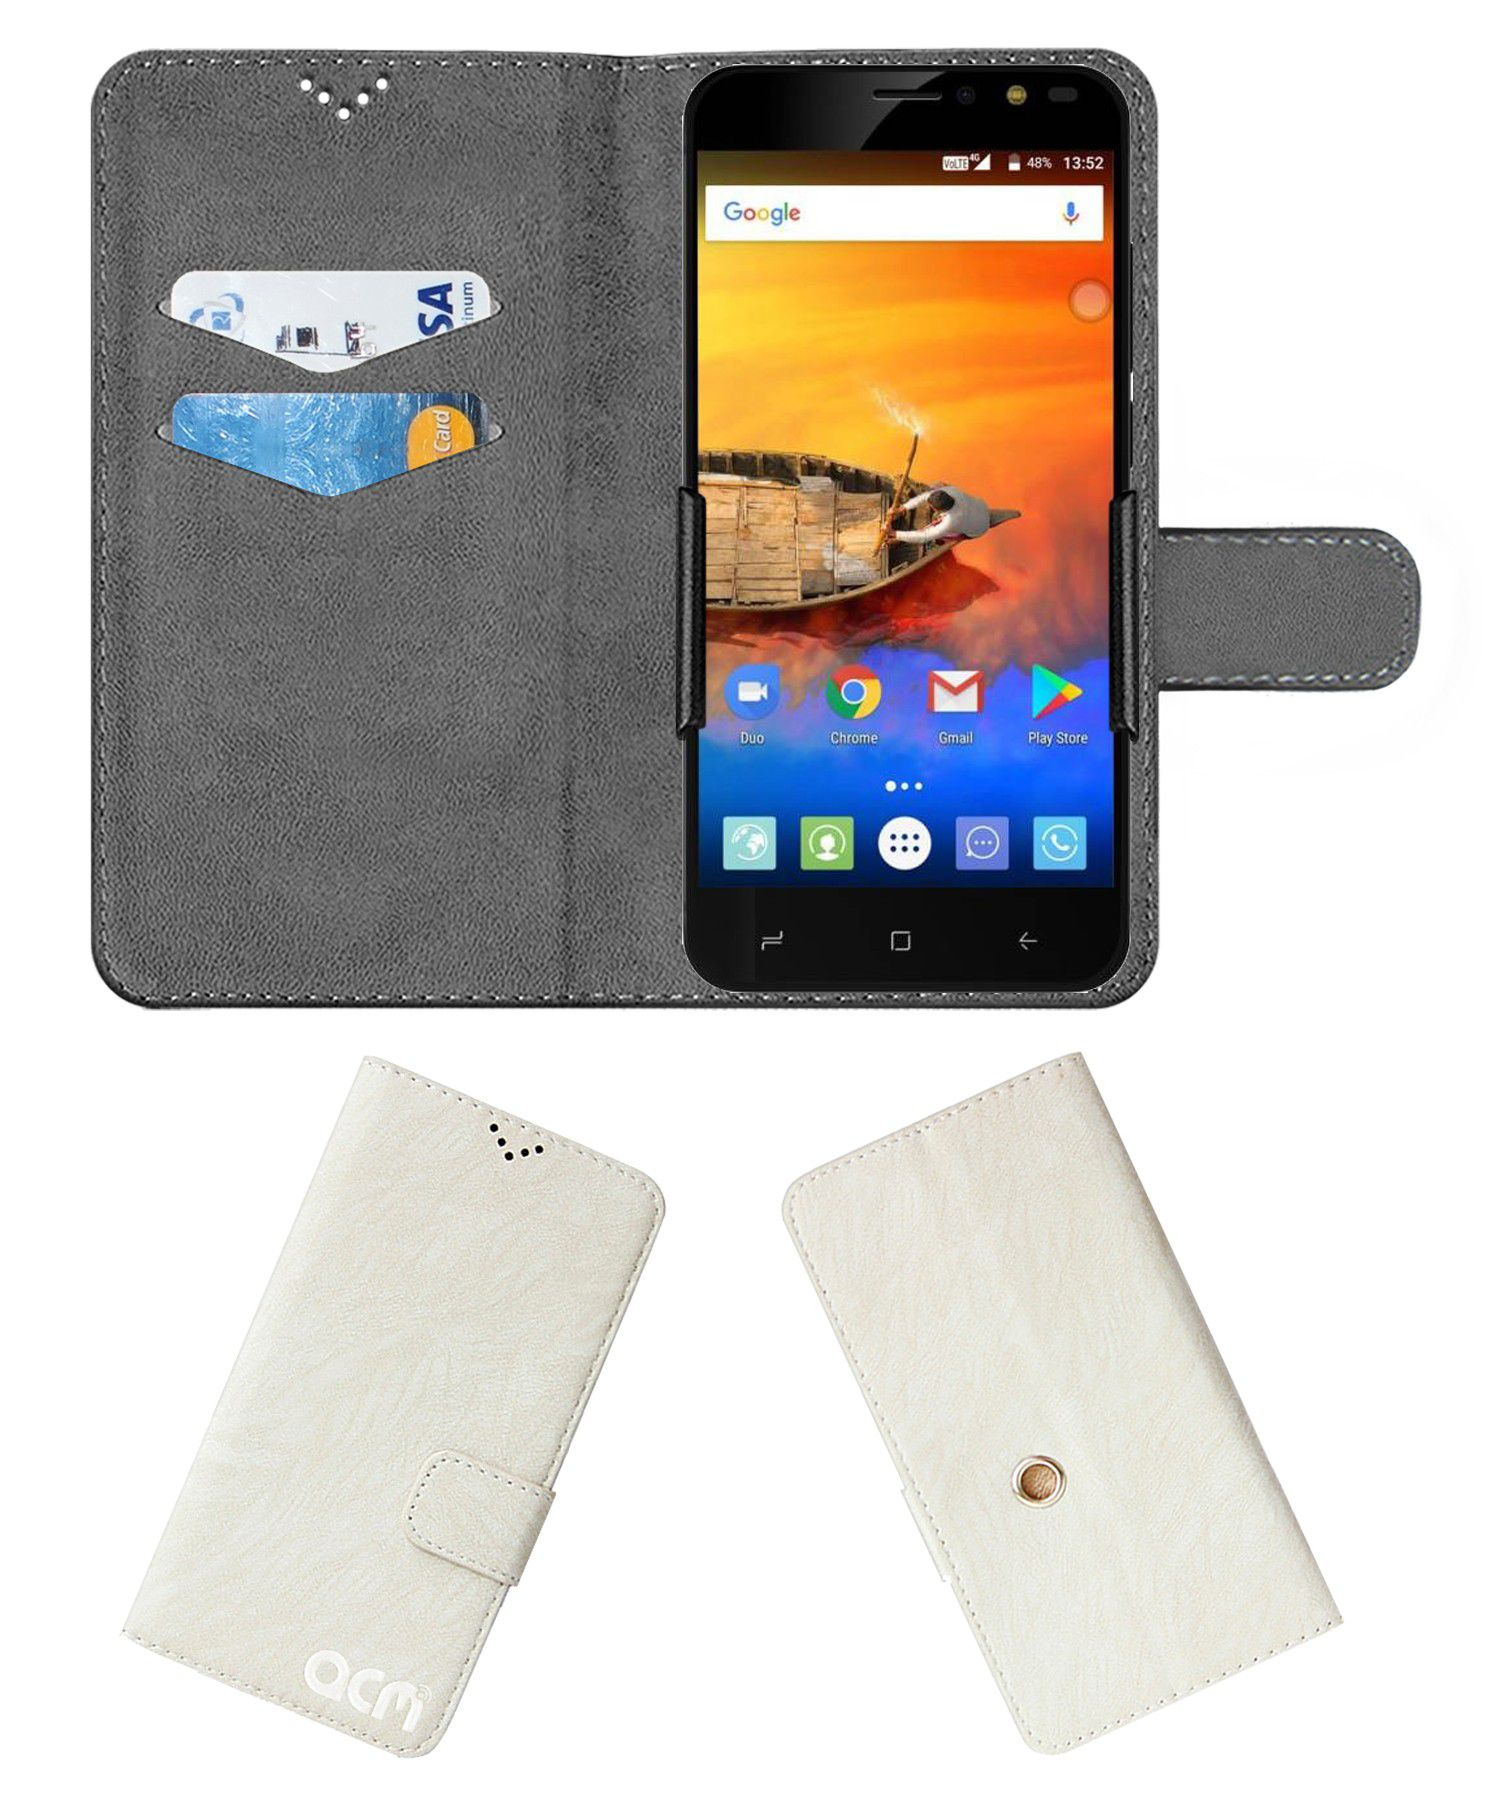 iVoomi Me3 Flip Cover by ACM - White Clip holder to hold your mobile securely